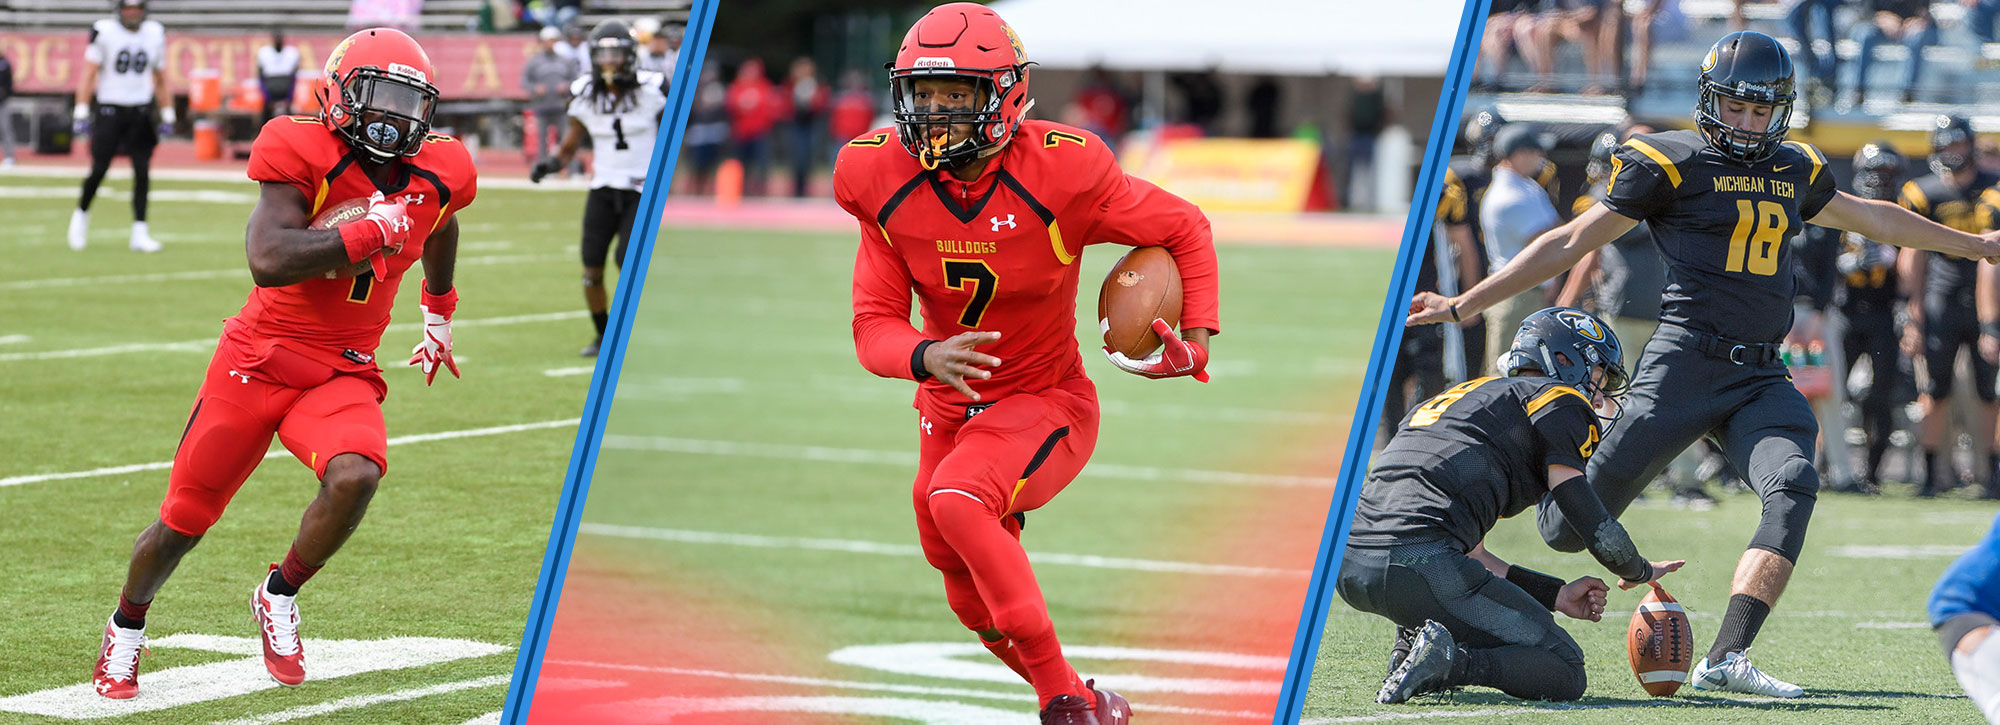 Ferris State's Campbell & Stephenson, Michigan Tech's Zeboor Claim GLIAC Football Player of the Week Accolades